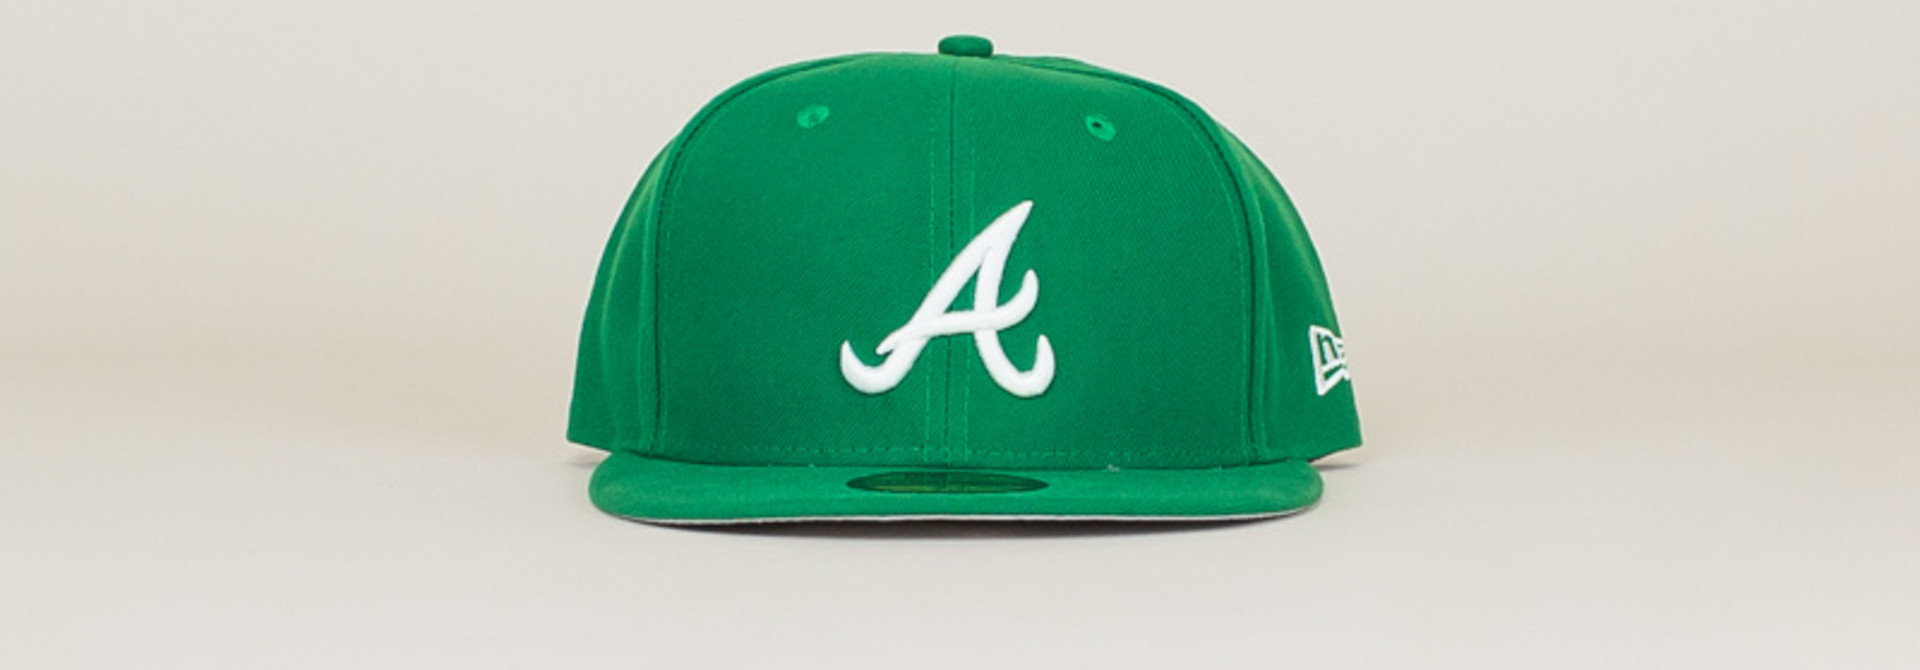 New Era Atlanta Braves Fitted Hat - Green